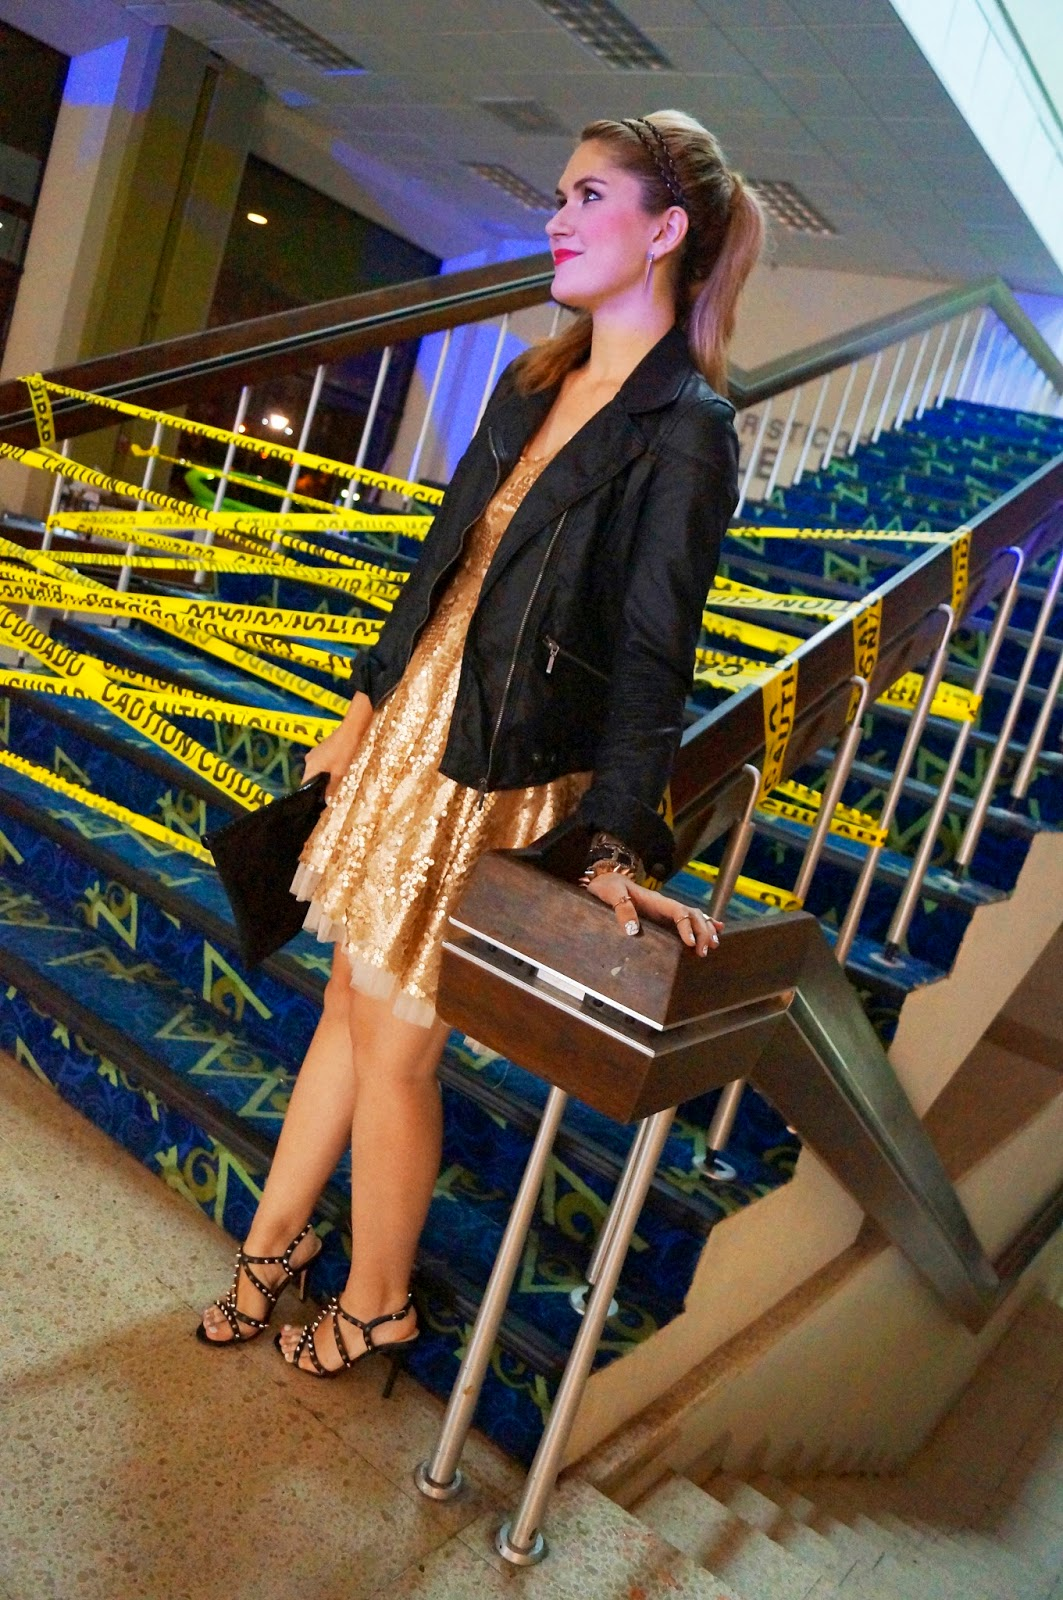 Add a motorcycle jacket to a gold sequin dress to look edgy!